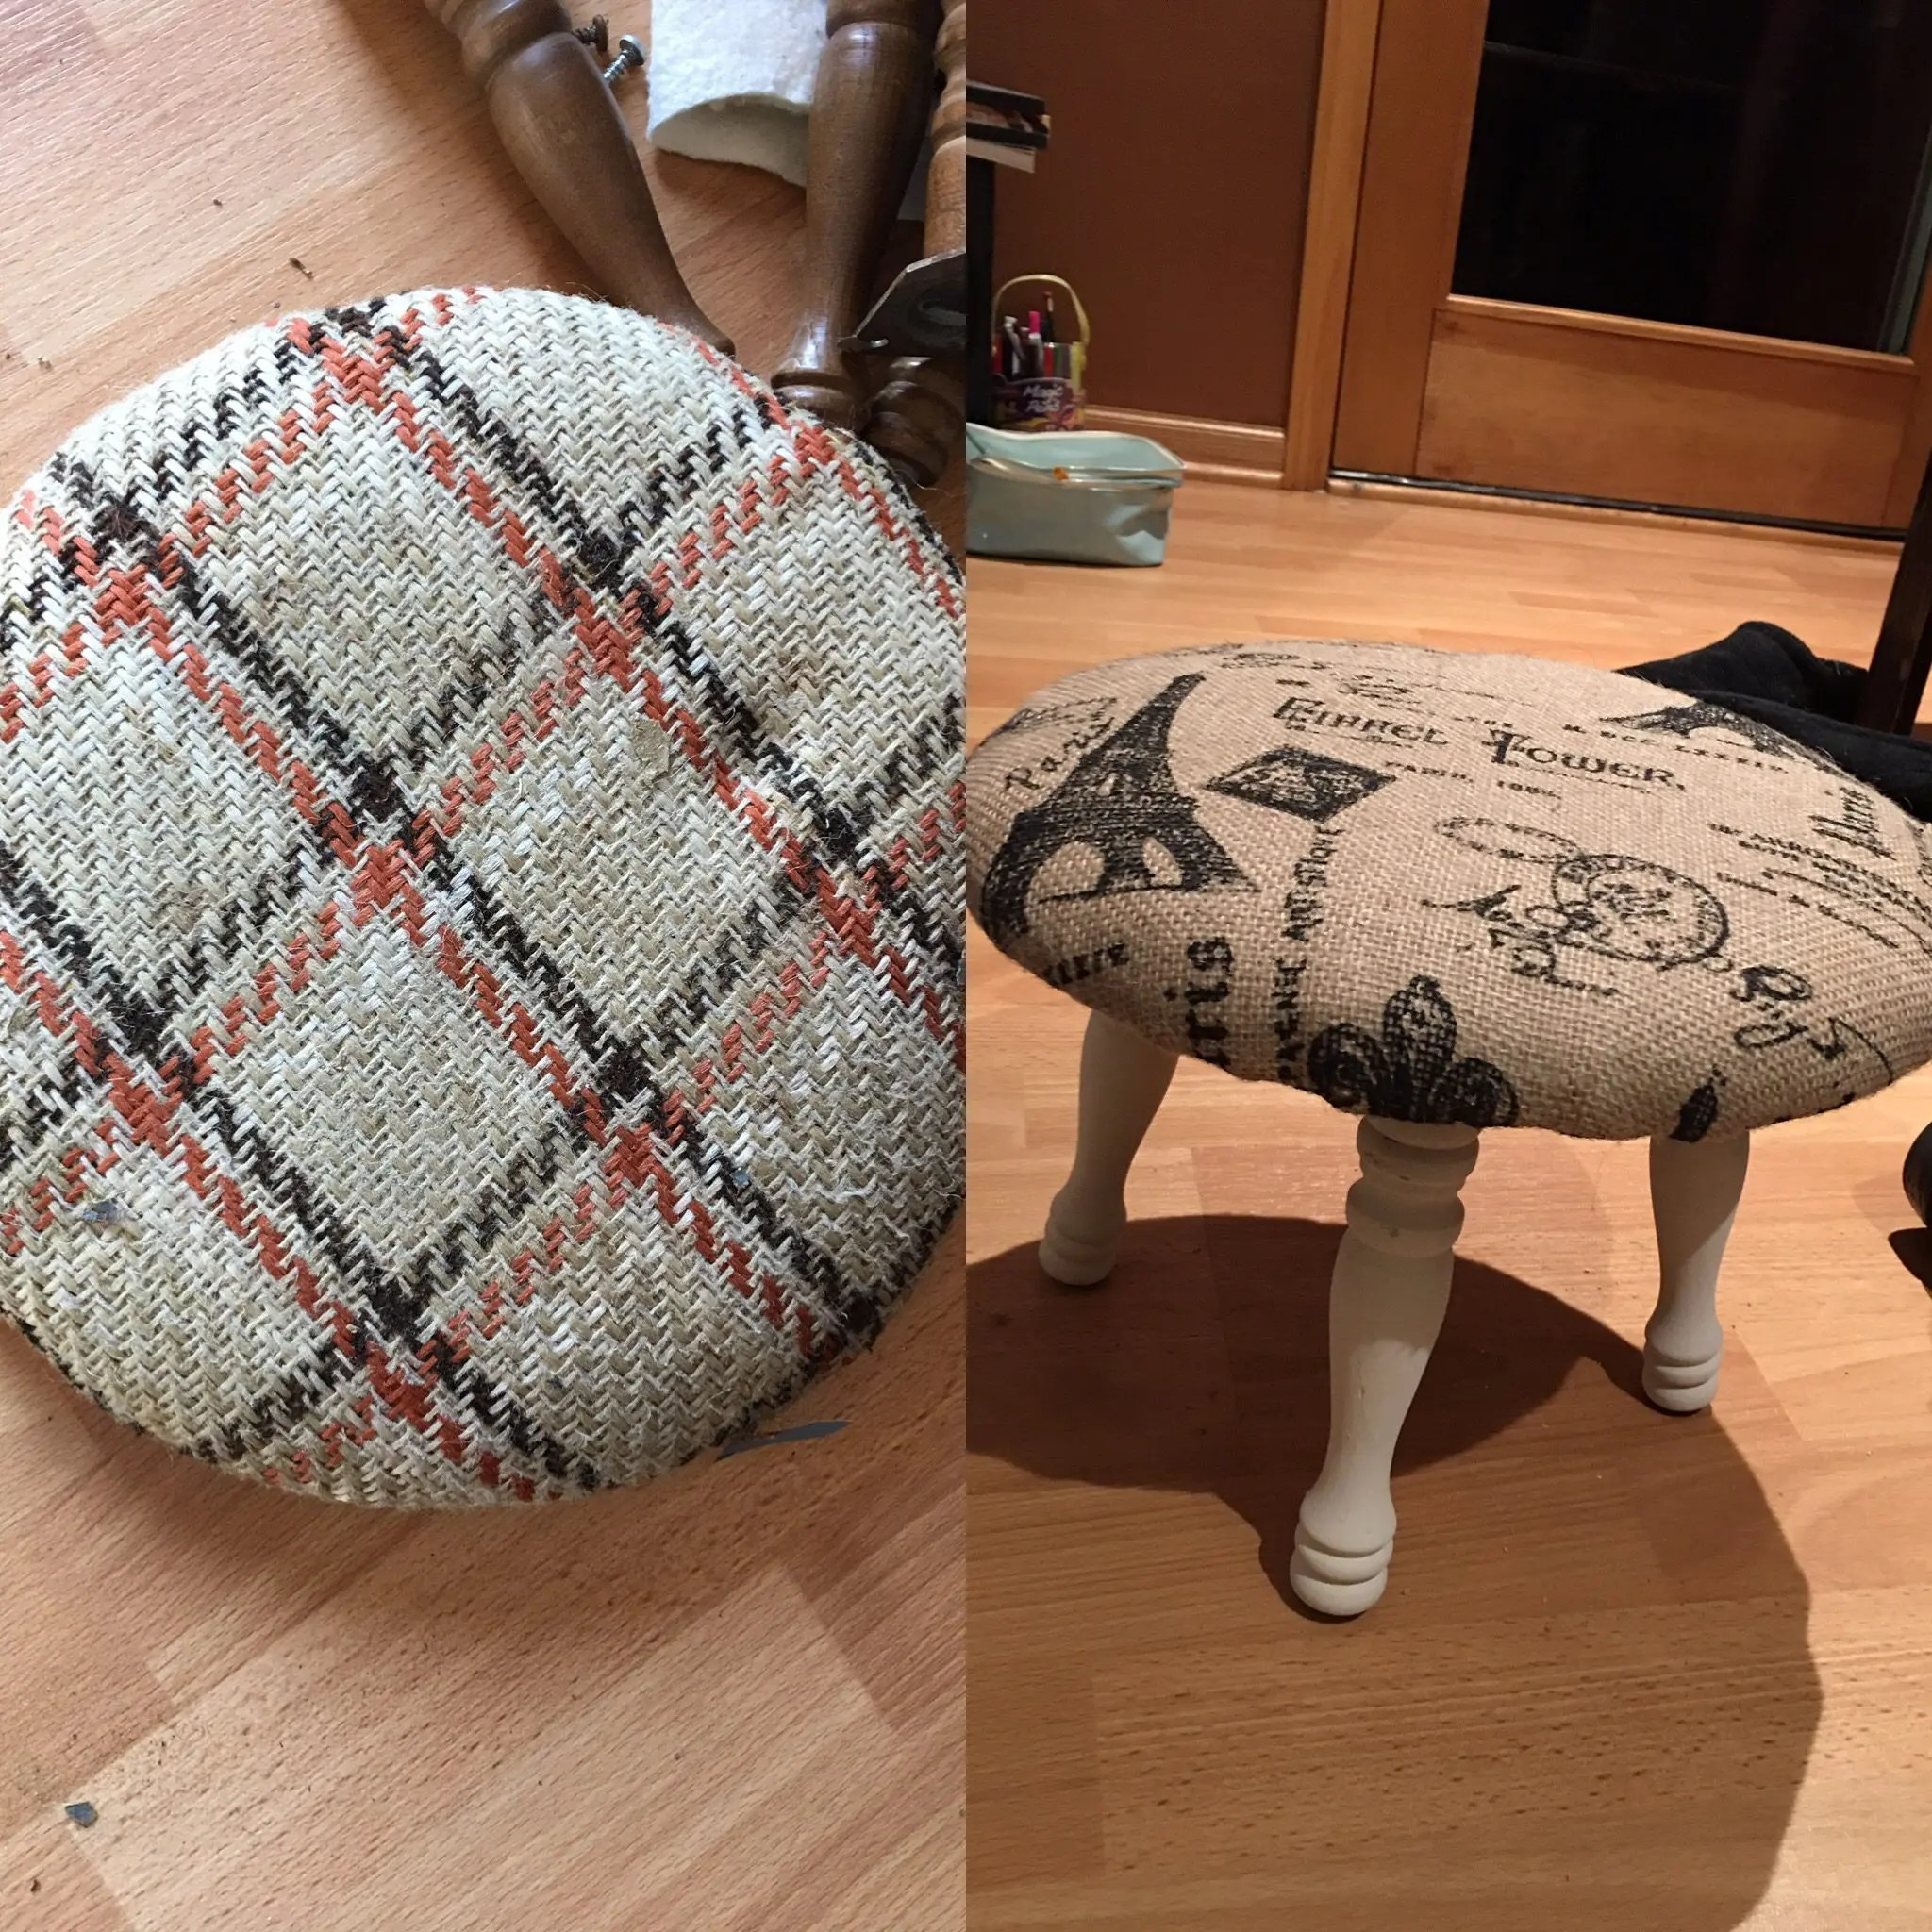 The Little French Footstool